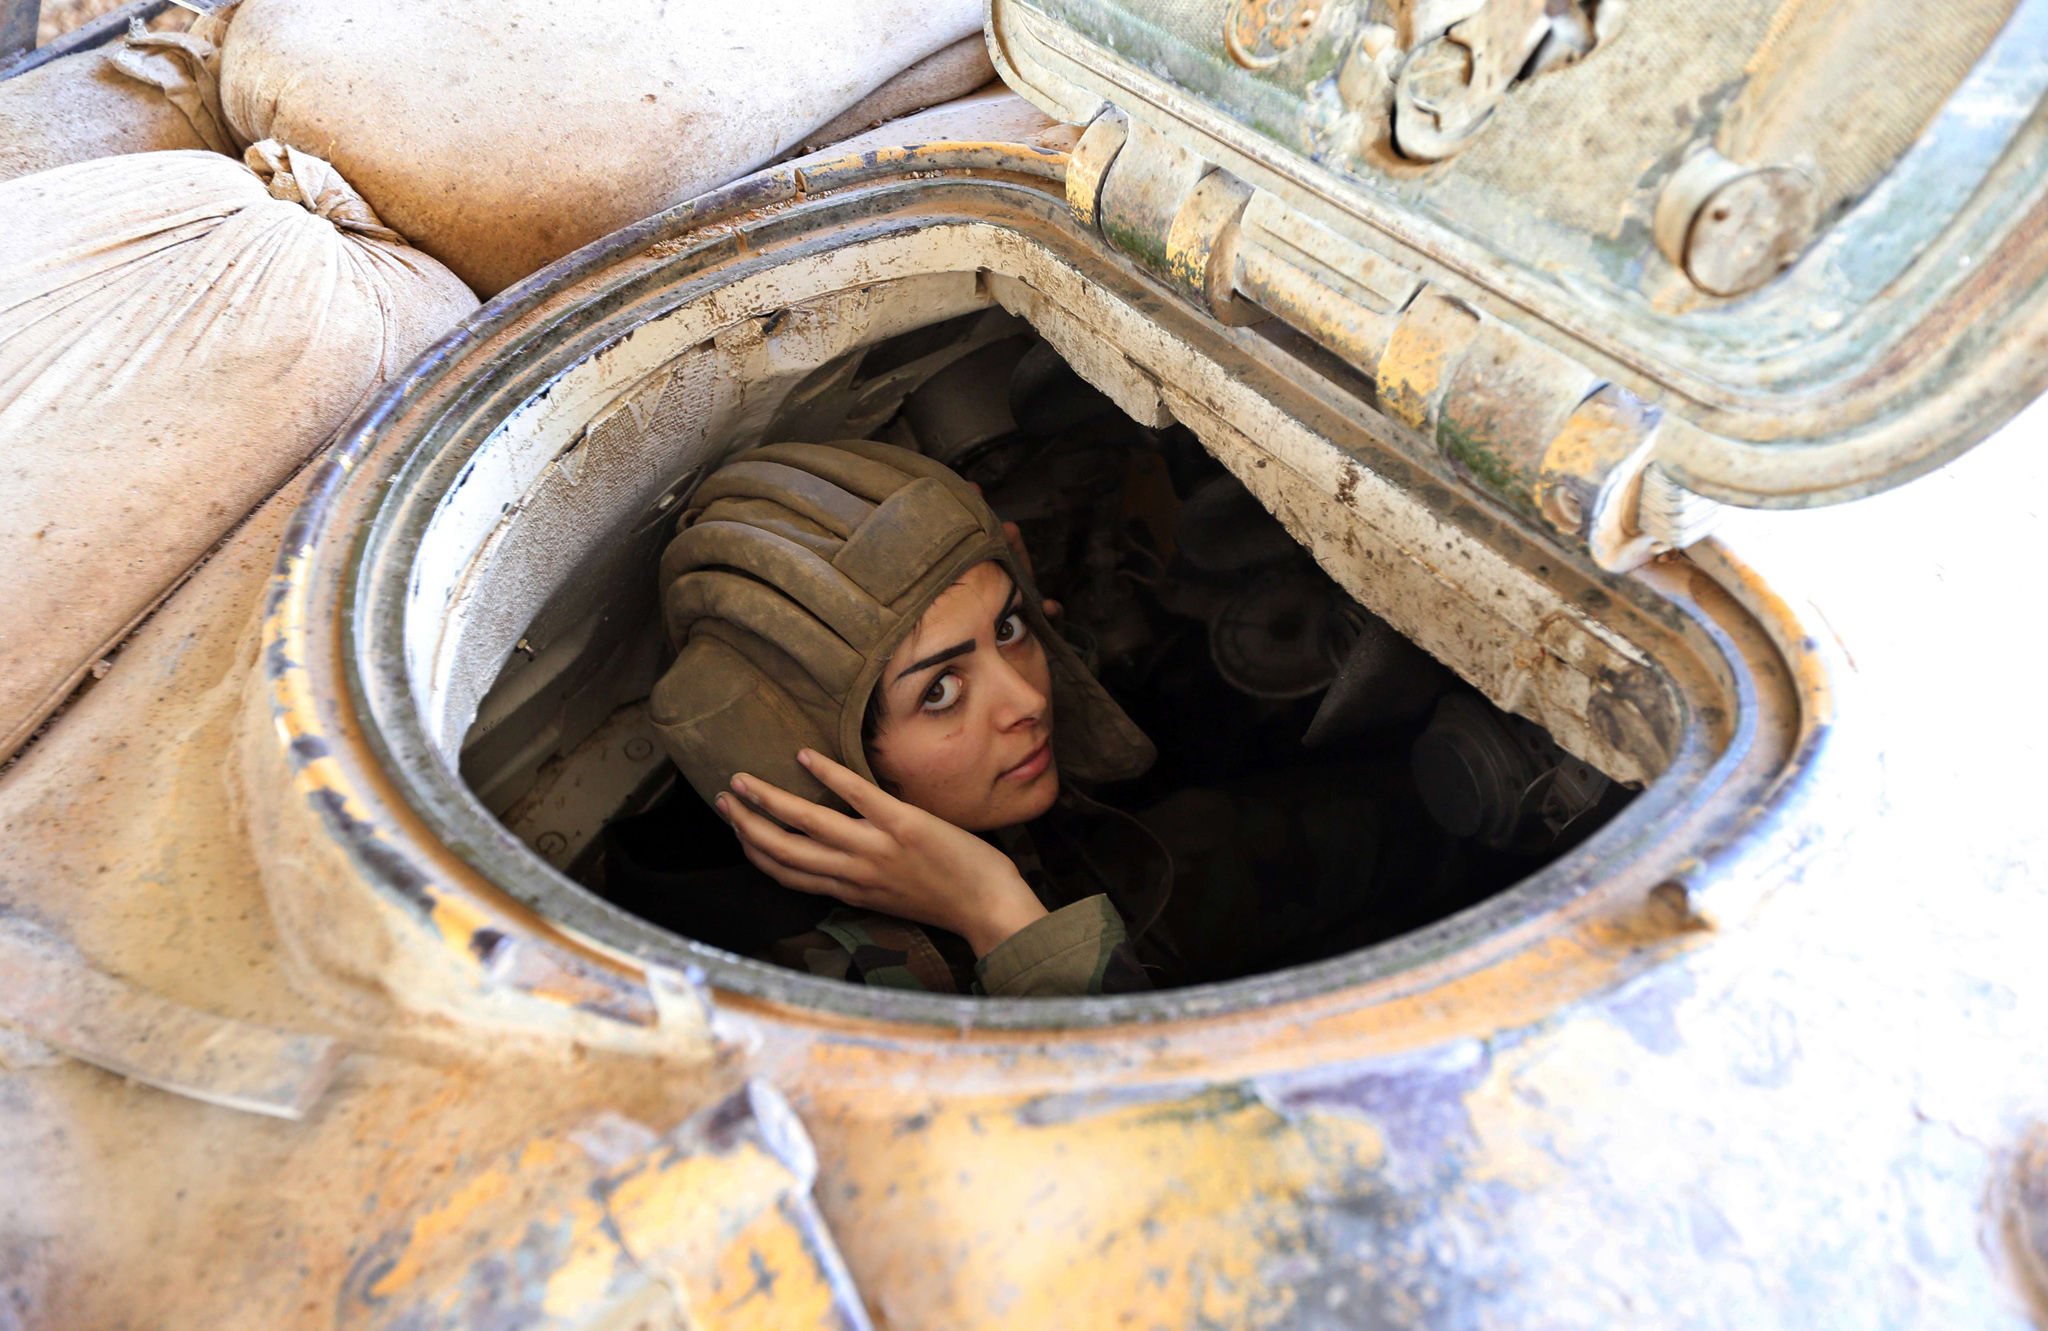 A female Syrian soldier from the Republican Guard commando battalion drives a tank during clashes with rebels in the restive Jobar area, in eastern Damascus.